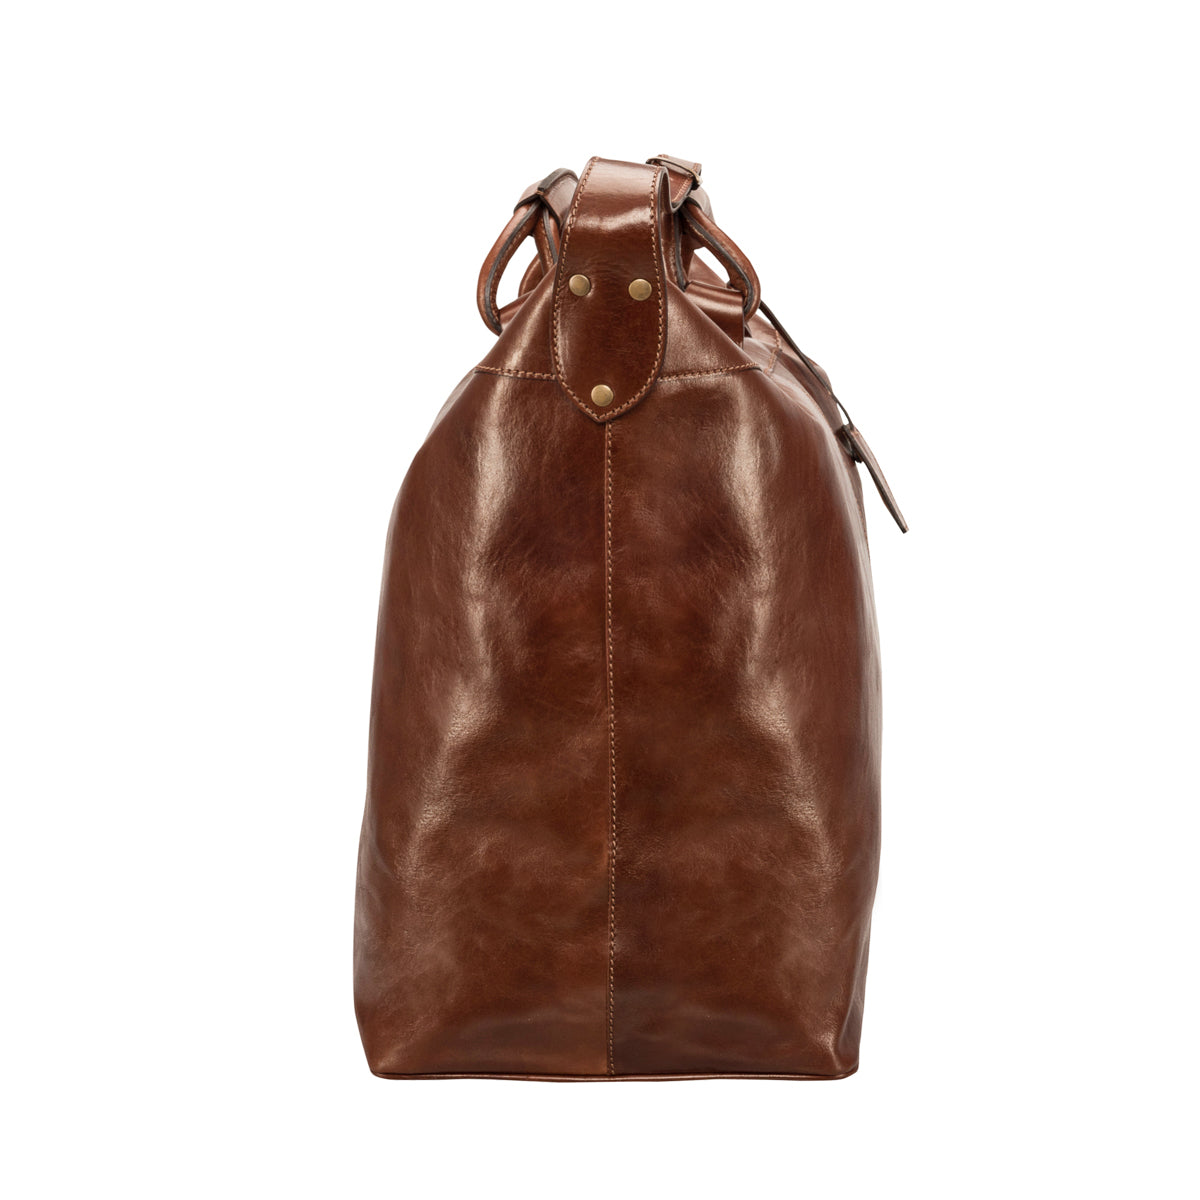 Image 3 of the 'Fabrizio' Chestnut Veg-Tanned Leather Holdall